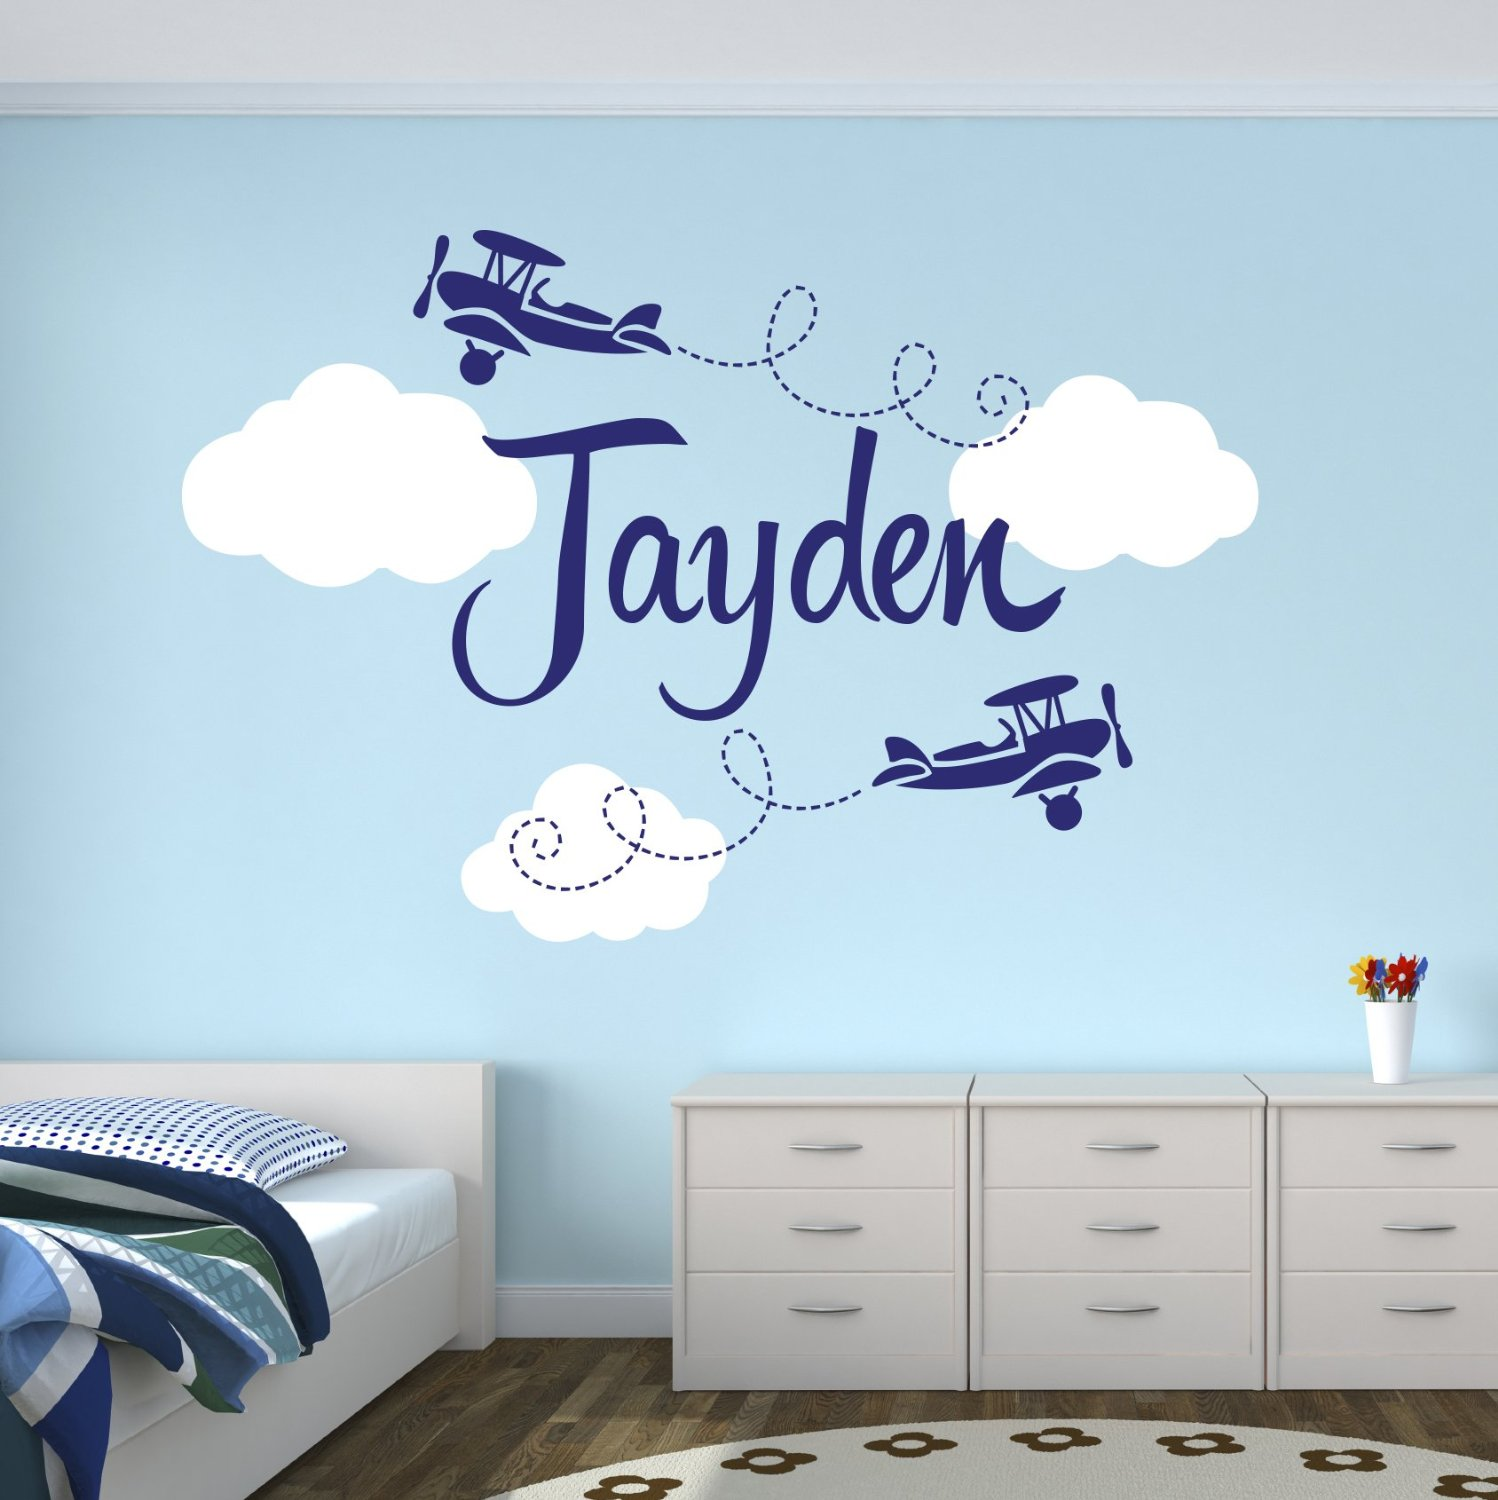 popular kids airplane art buy cheap kids airplane art lots from personalized airplane name clouds decal nursery decor home decoration kids decal children room decor vinyl